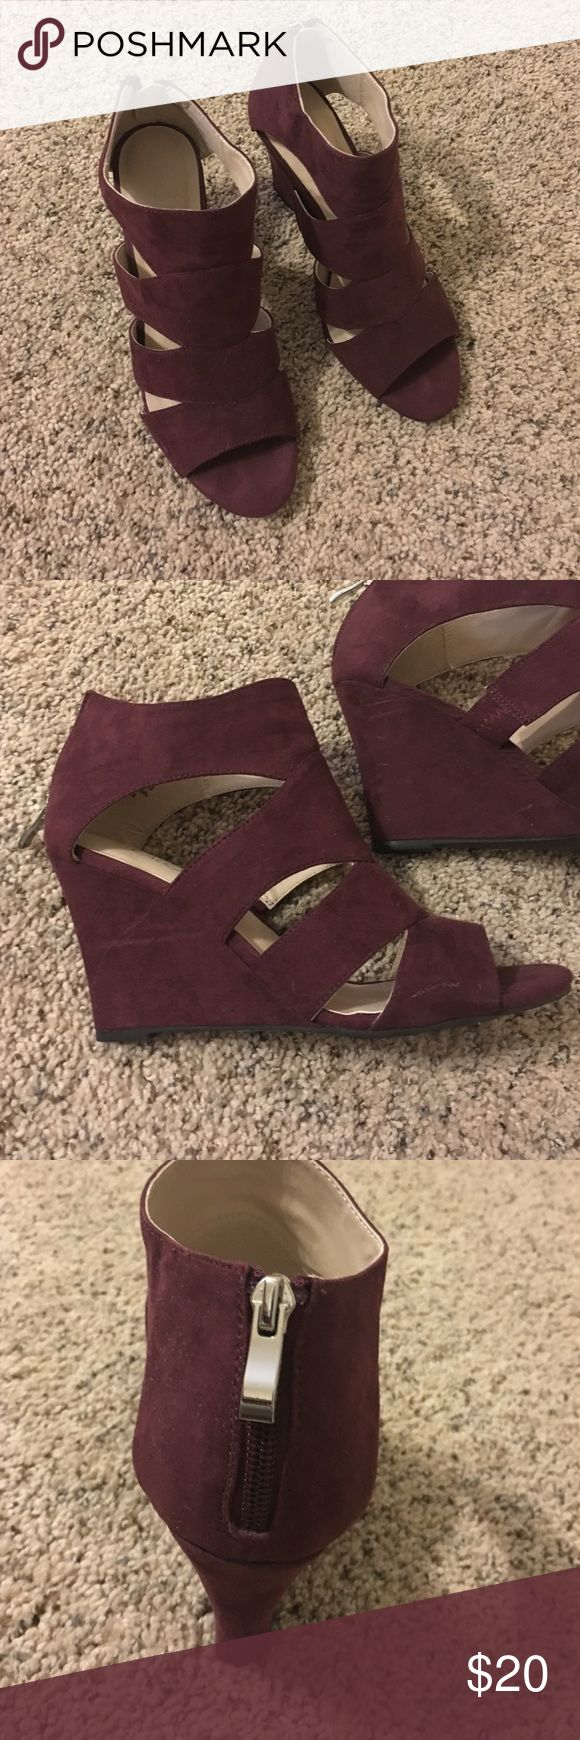 Burgundy wedge sandals Burgundy faux suede cage wedges. Size 8 super comfy! Worn twice Shoes Wedges